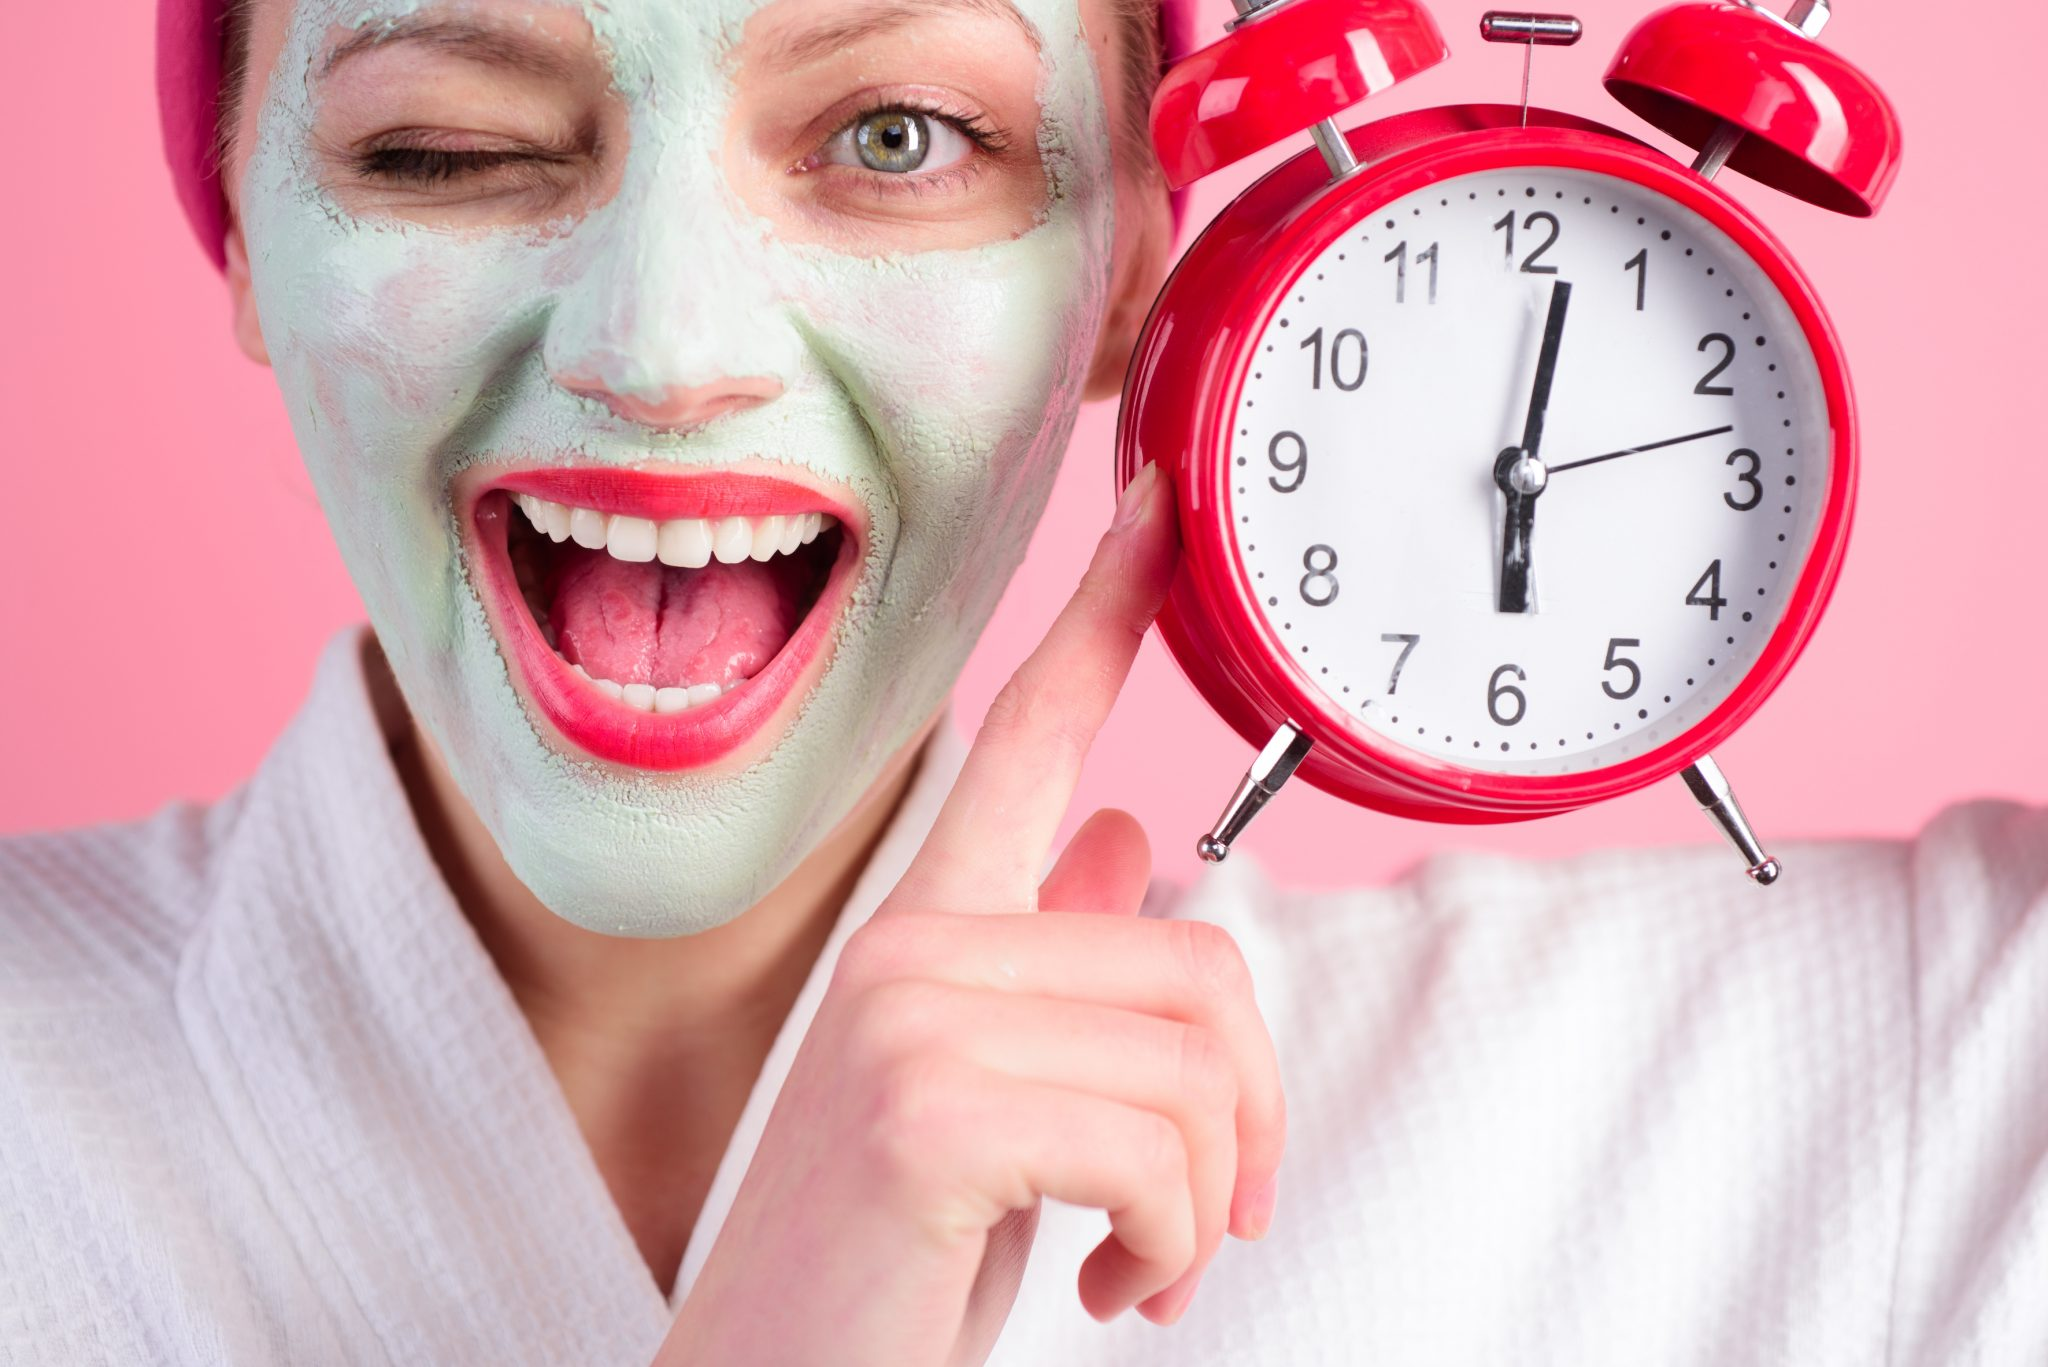 Facial cosmetical mask. Spa. Cosmetic procedures. Woman with cosmetic mask on face holds clock. Wellness and Spa concept. Happy woman with facial mask. Close up portrait.